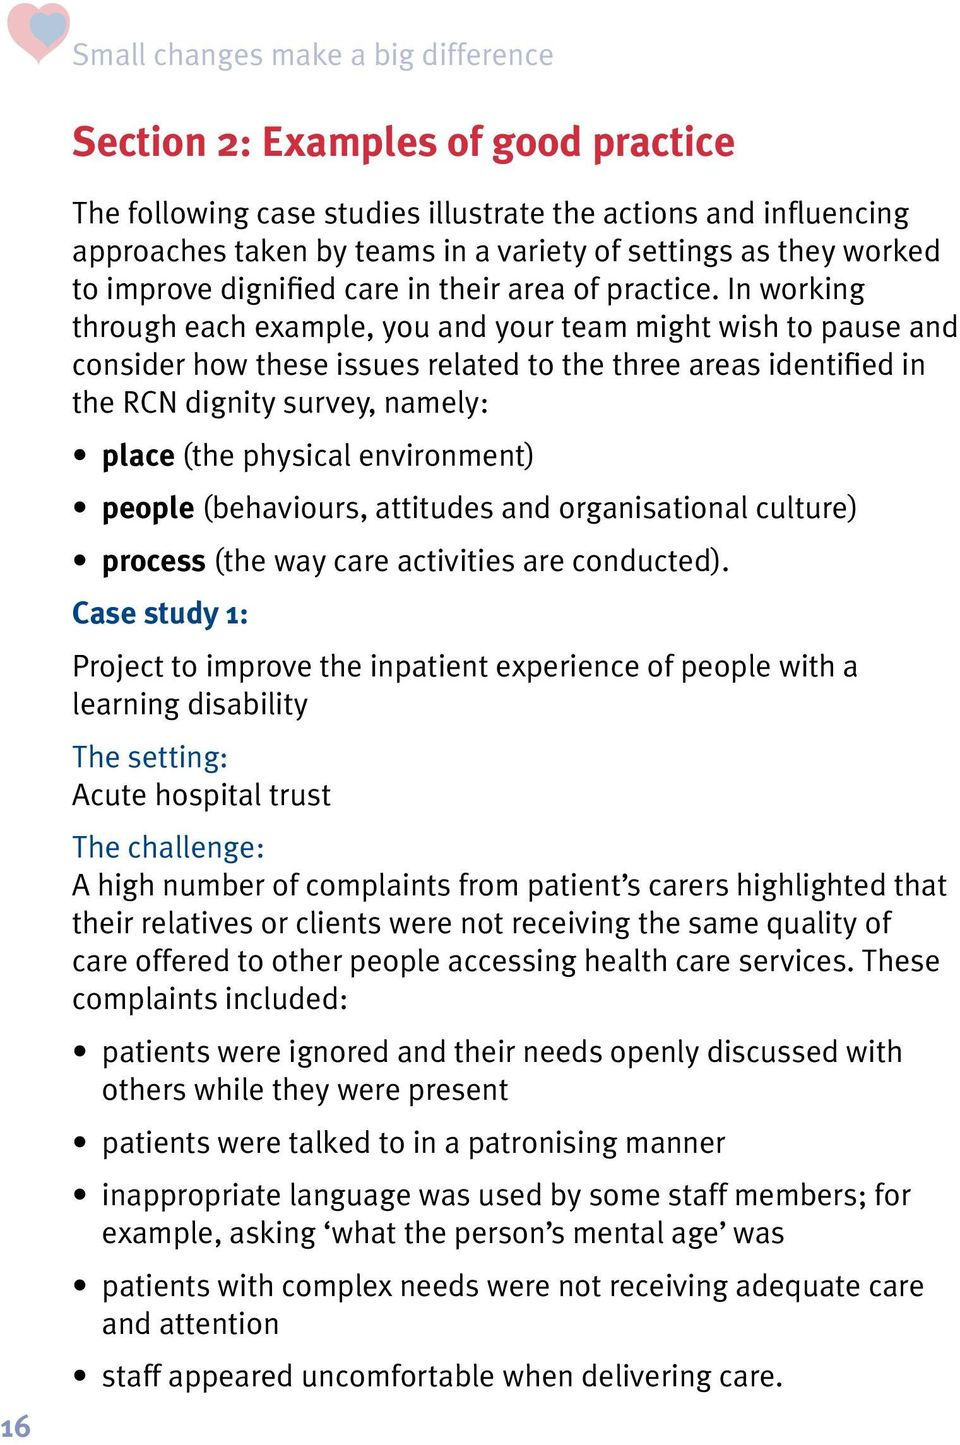 In working through each example, you and your team might wish to pause and consider how these issues related to the three areas identified in the RCN dignity survey, namely: place (the physical